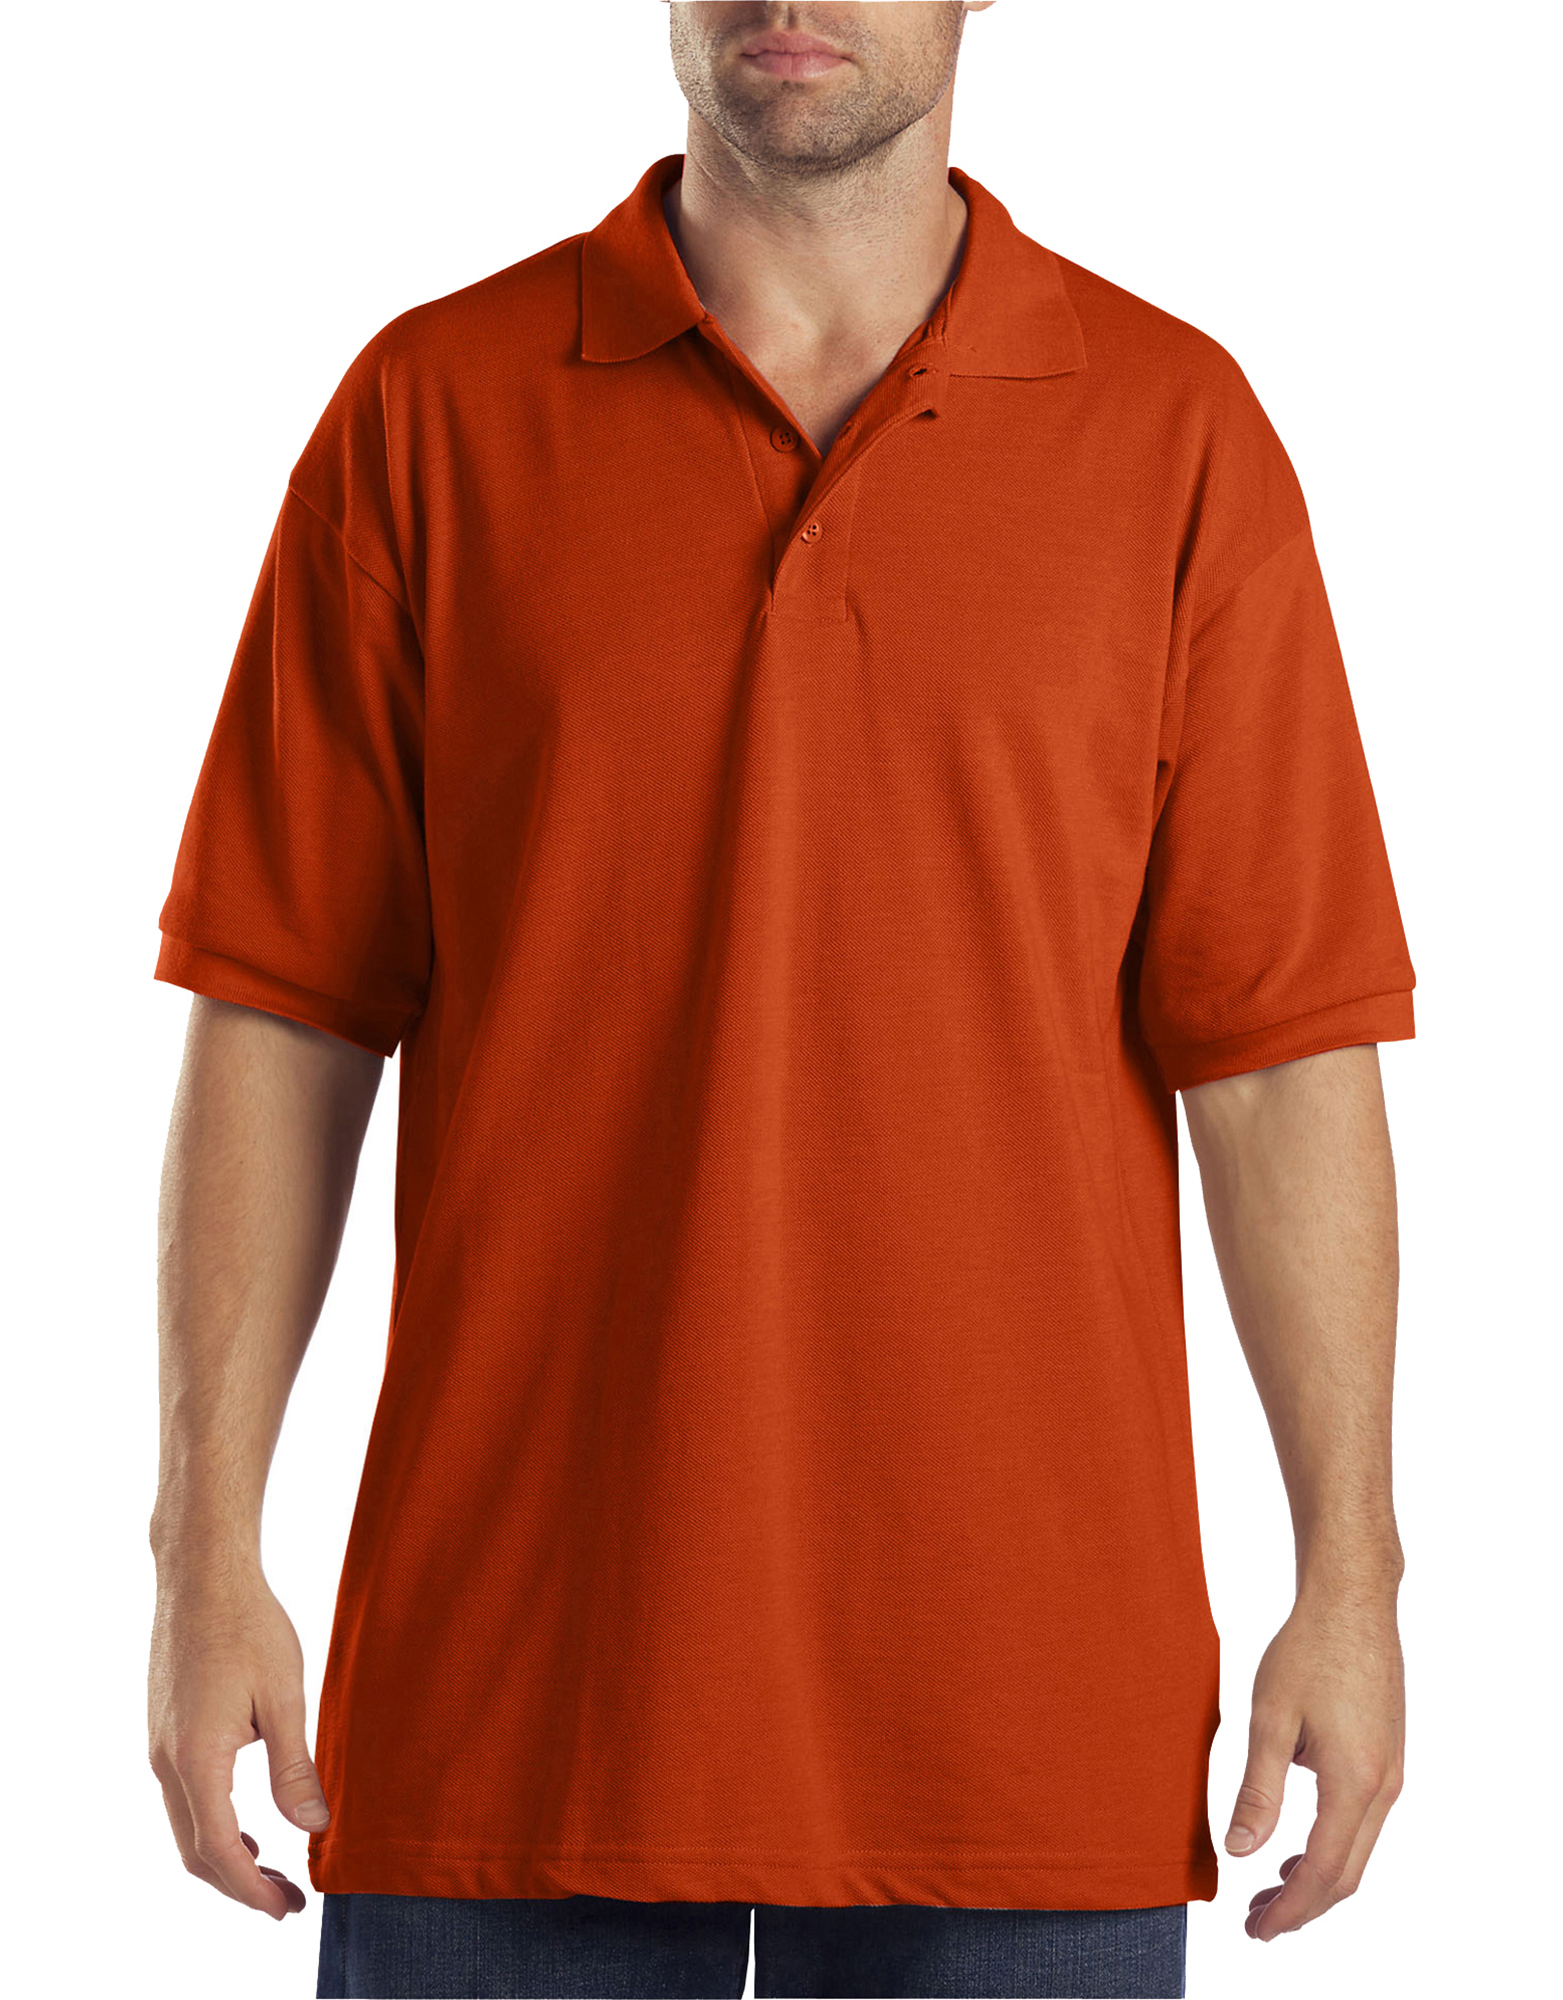 Adult Sized Short Sleeve Pique Polo Shirt - Orange (OR)